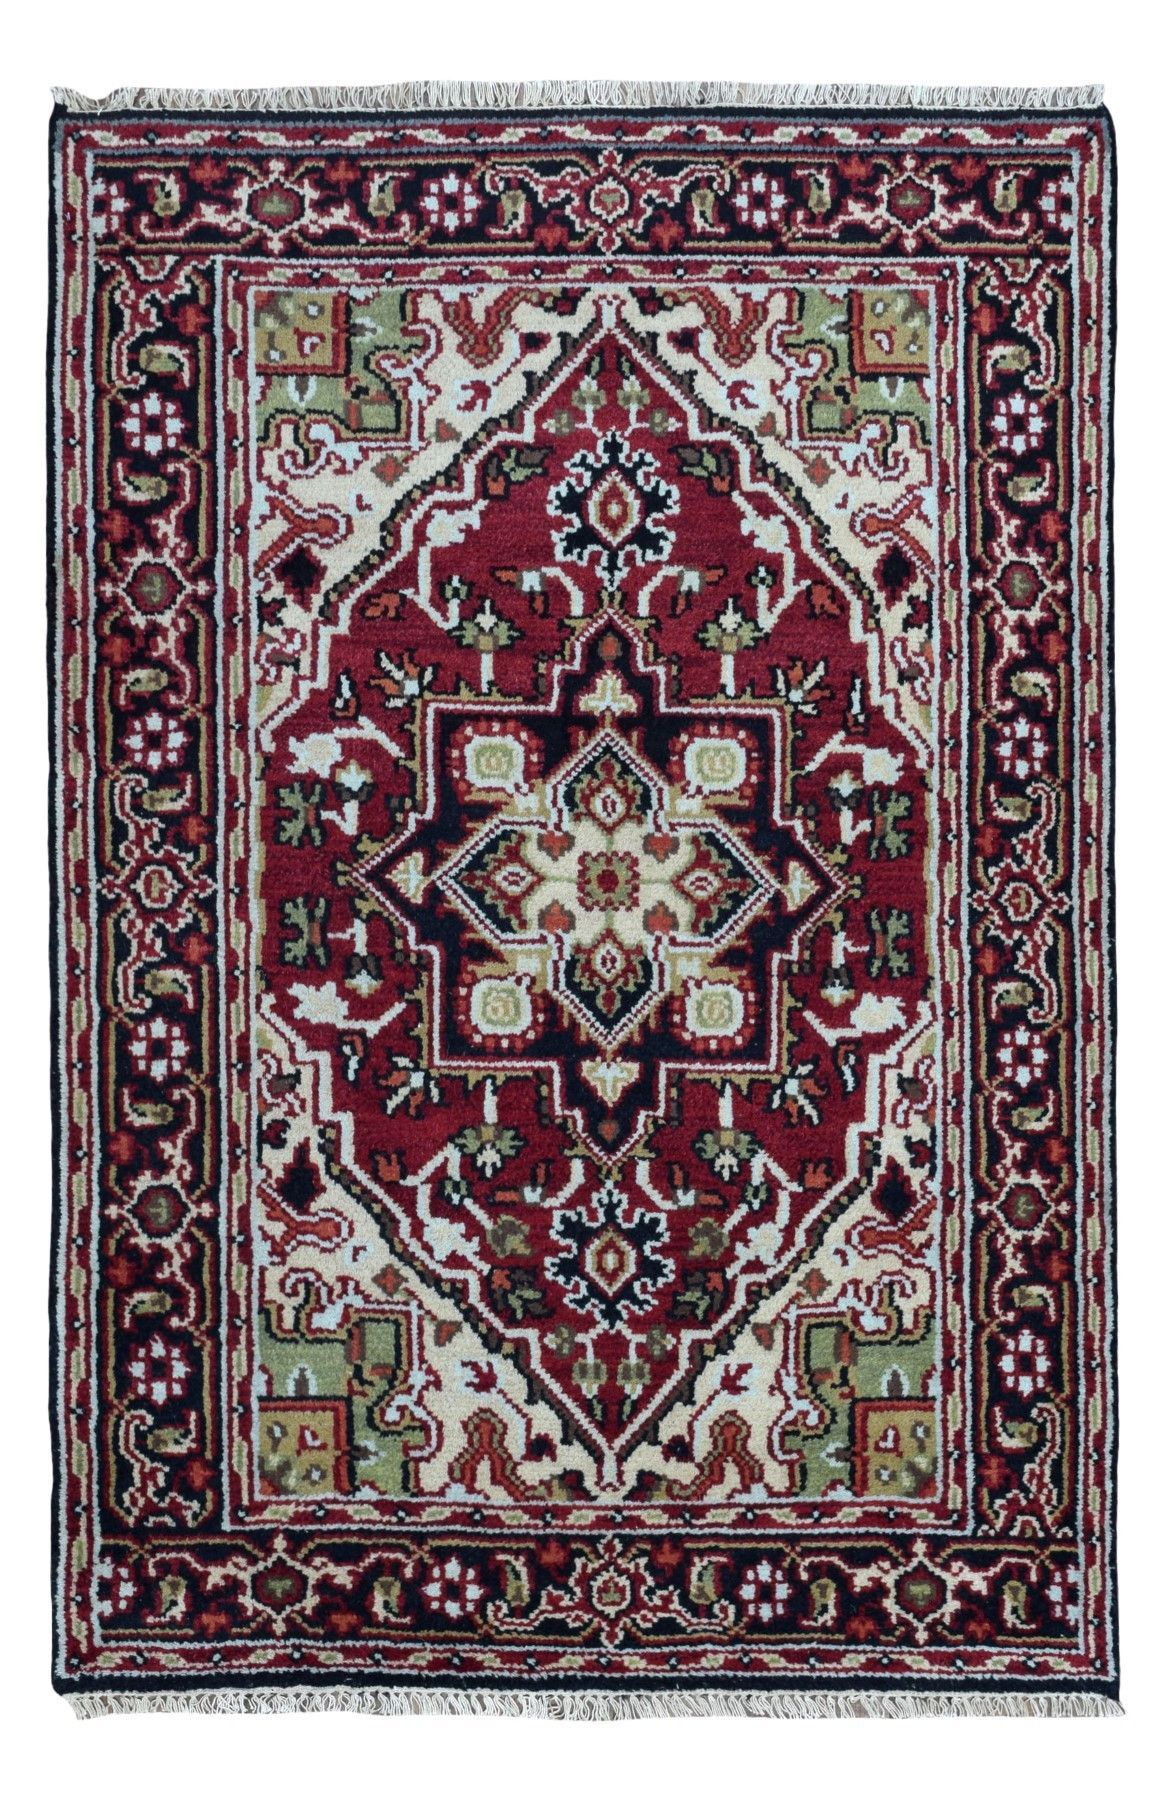 Black and Red Heriz Small Rug 4'X6'